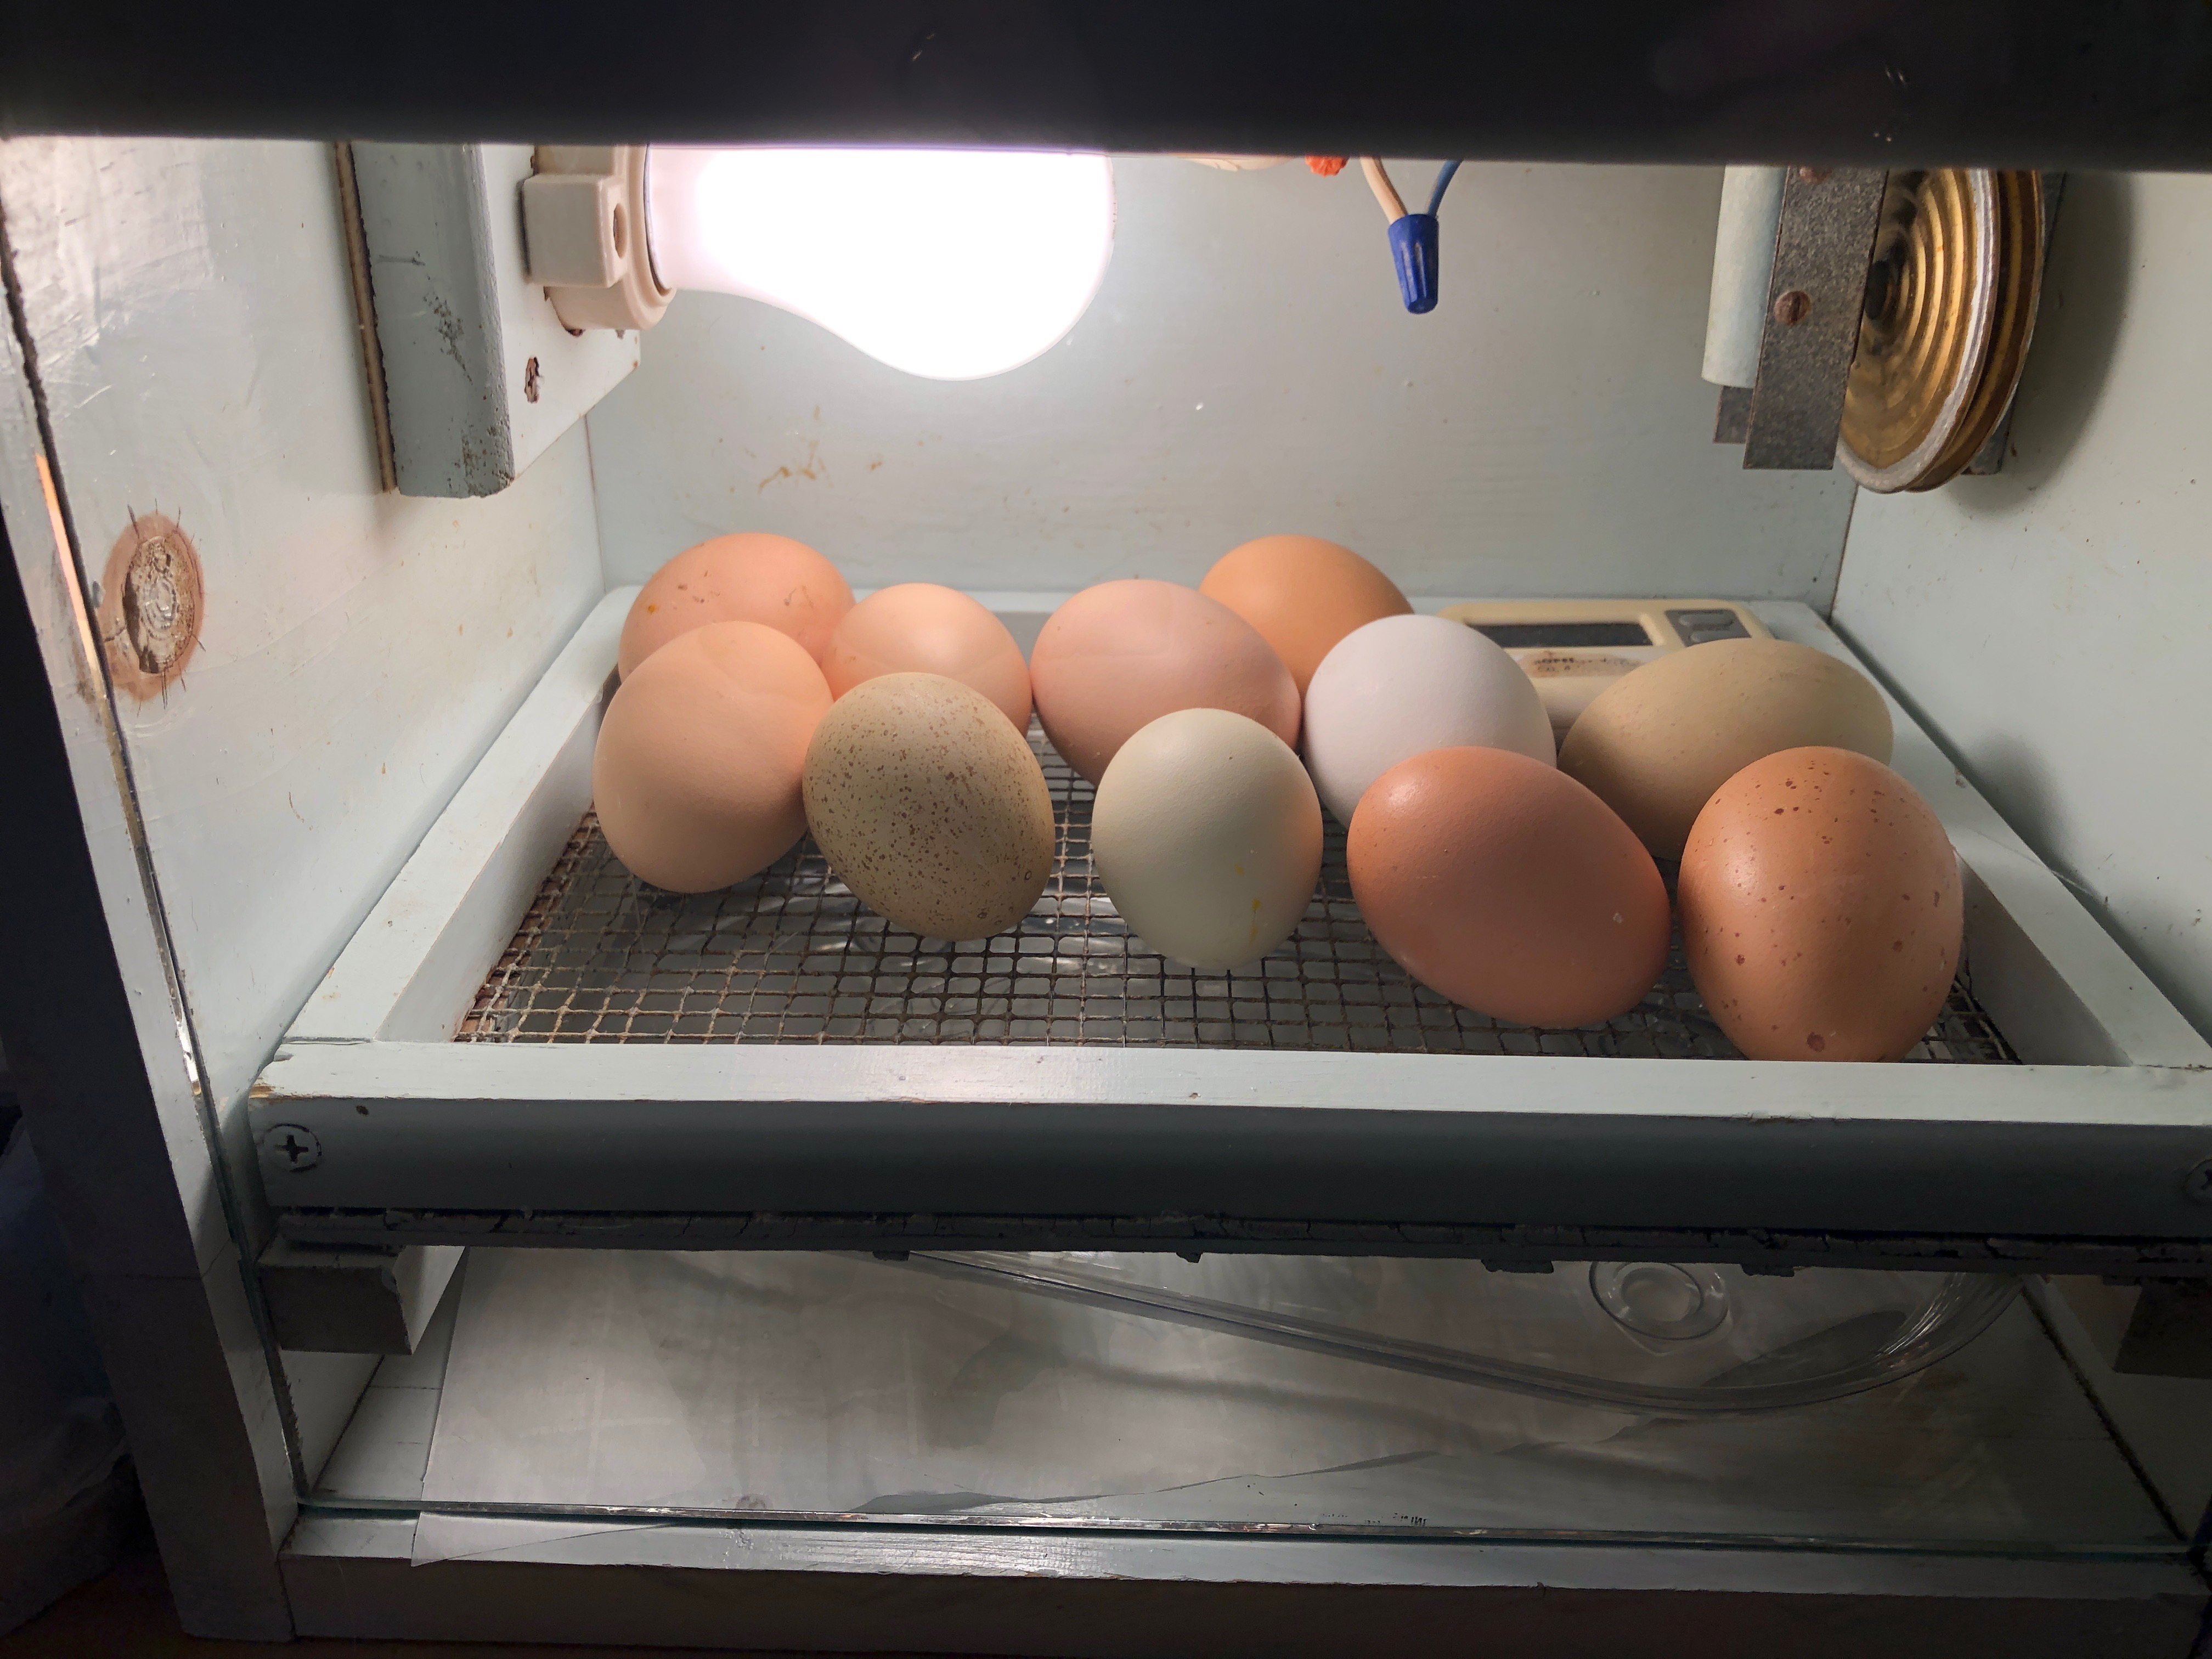 State extension specialist Laura Browning brought three incubators to her Boone County home so the eggs could continue to develop. Photo by Laura Browning.